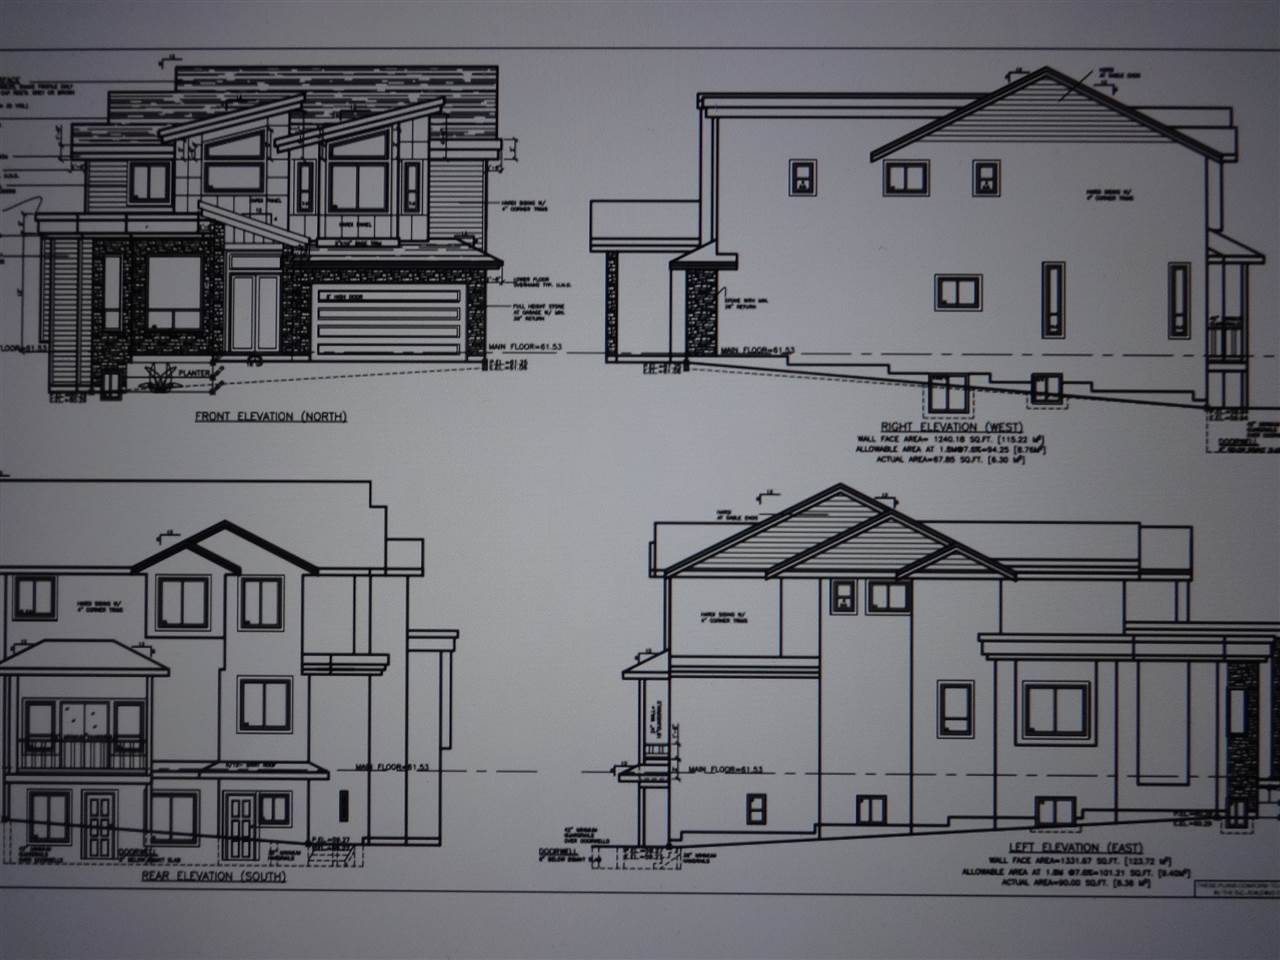 New Sub Division of 11 RF Lots that will accommodate 2 Storey plus Basements homes. Build your dream home with walkout basement in a prestigious neighbourhood of FRASER HEIGHTS. Lot is fully serviced and building plans are submitted to City of Surrey for 3 level home. Bonus this cul-de-sac has 14 additional parking stalls. Walking distance to Fraser Wood Elementary School. Also near Pacific Academy & Fraser Heights Secondary. Minutes to Hwy access, Port Mann Bridge, Guildford Mall etc.